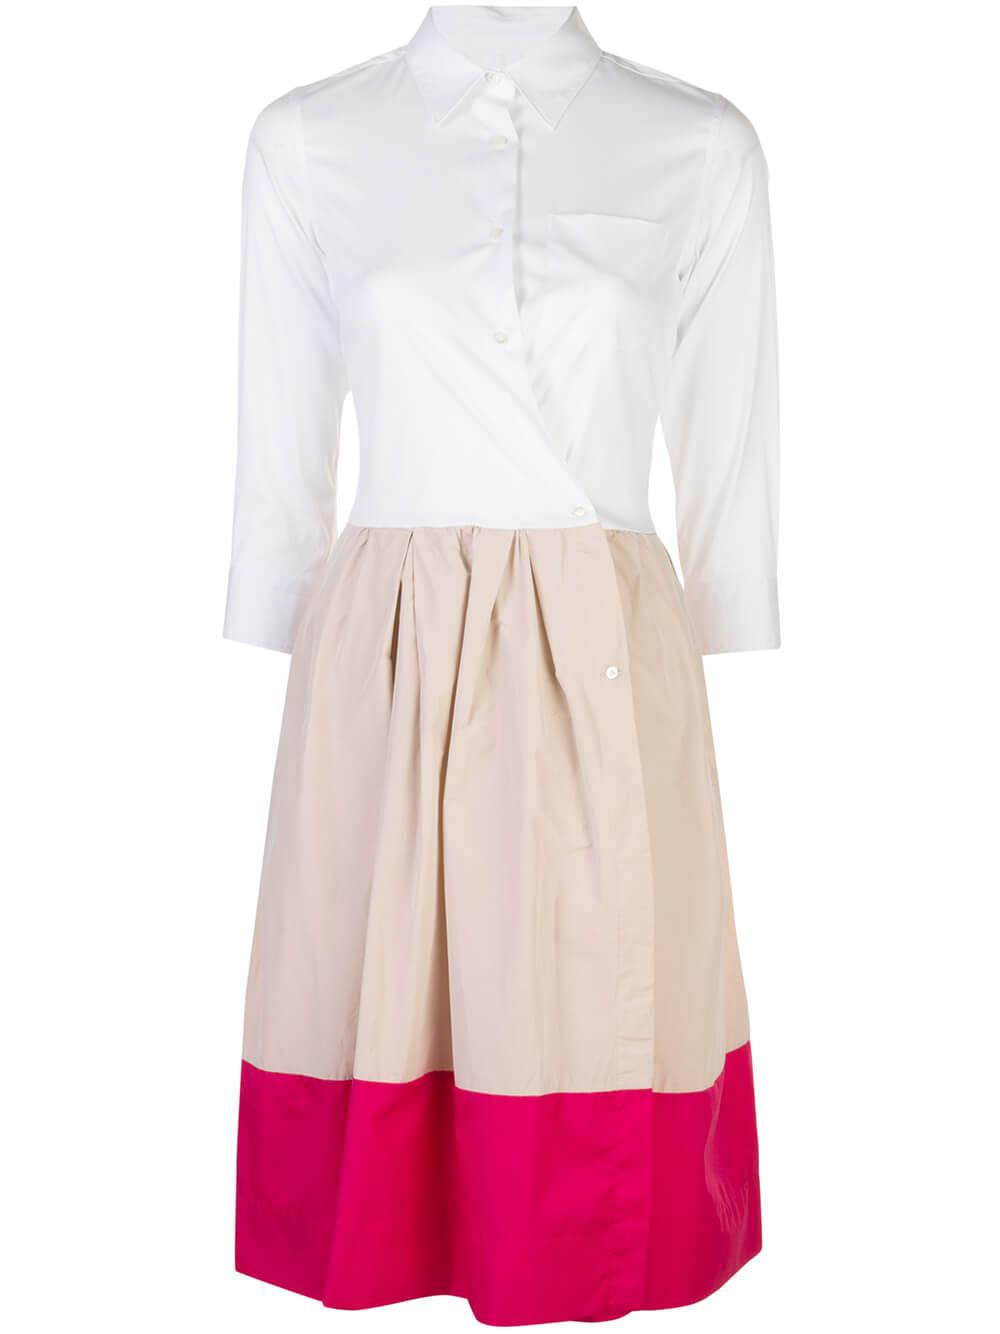 3/4 Sleeve Shirt Dress With Color Block Skirt